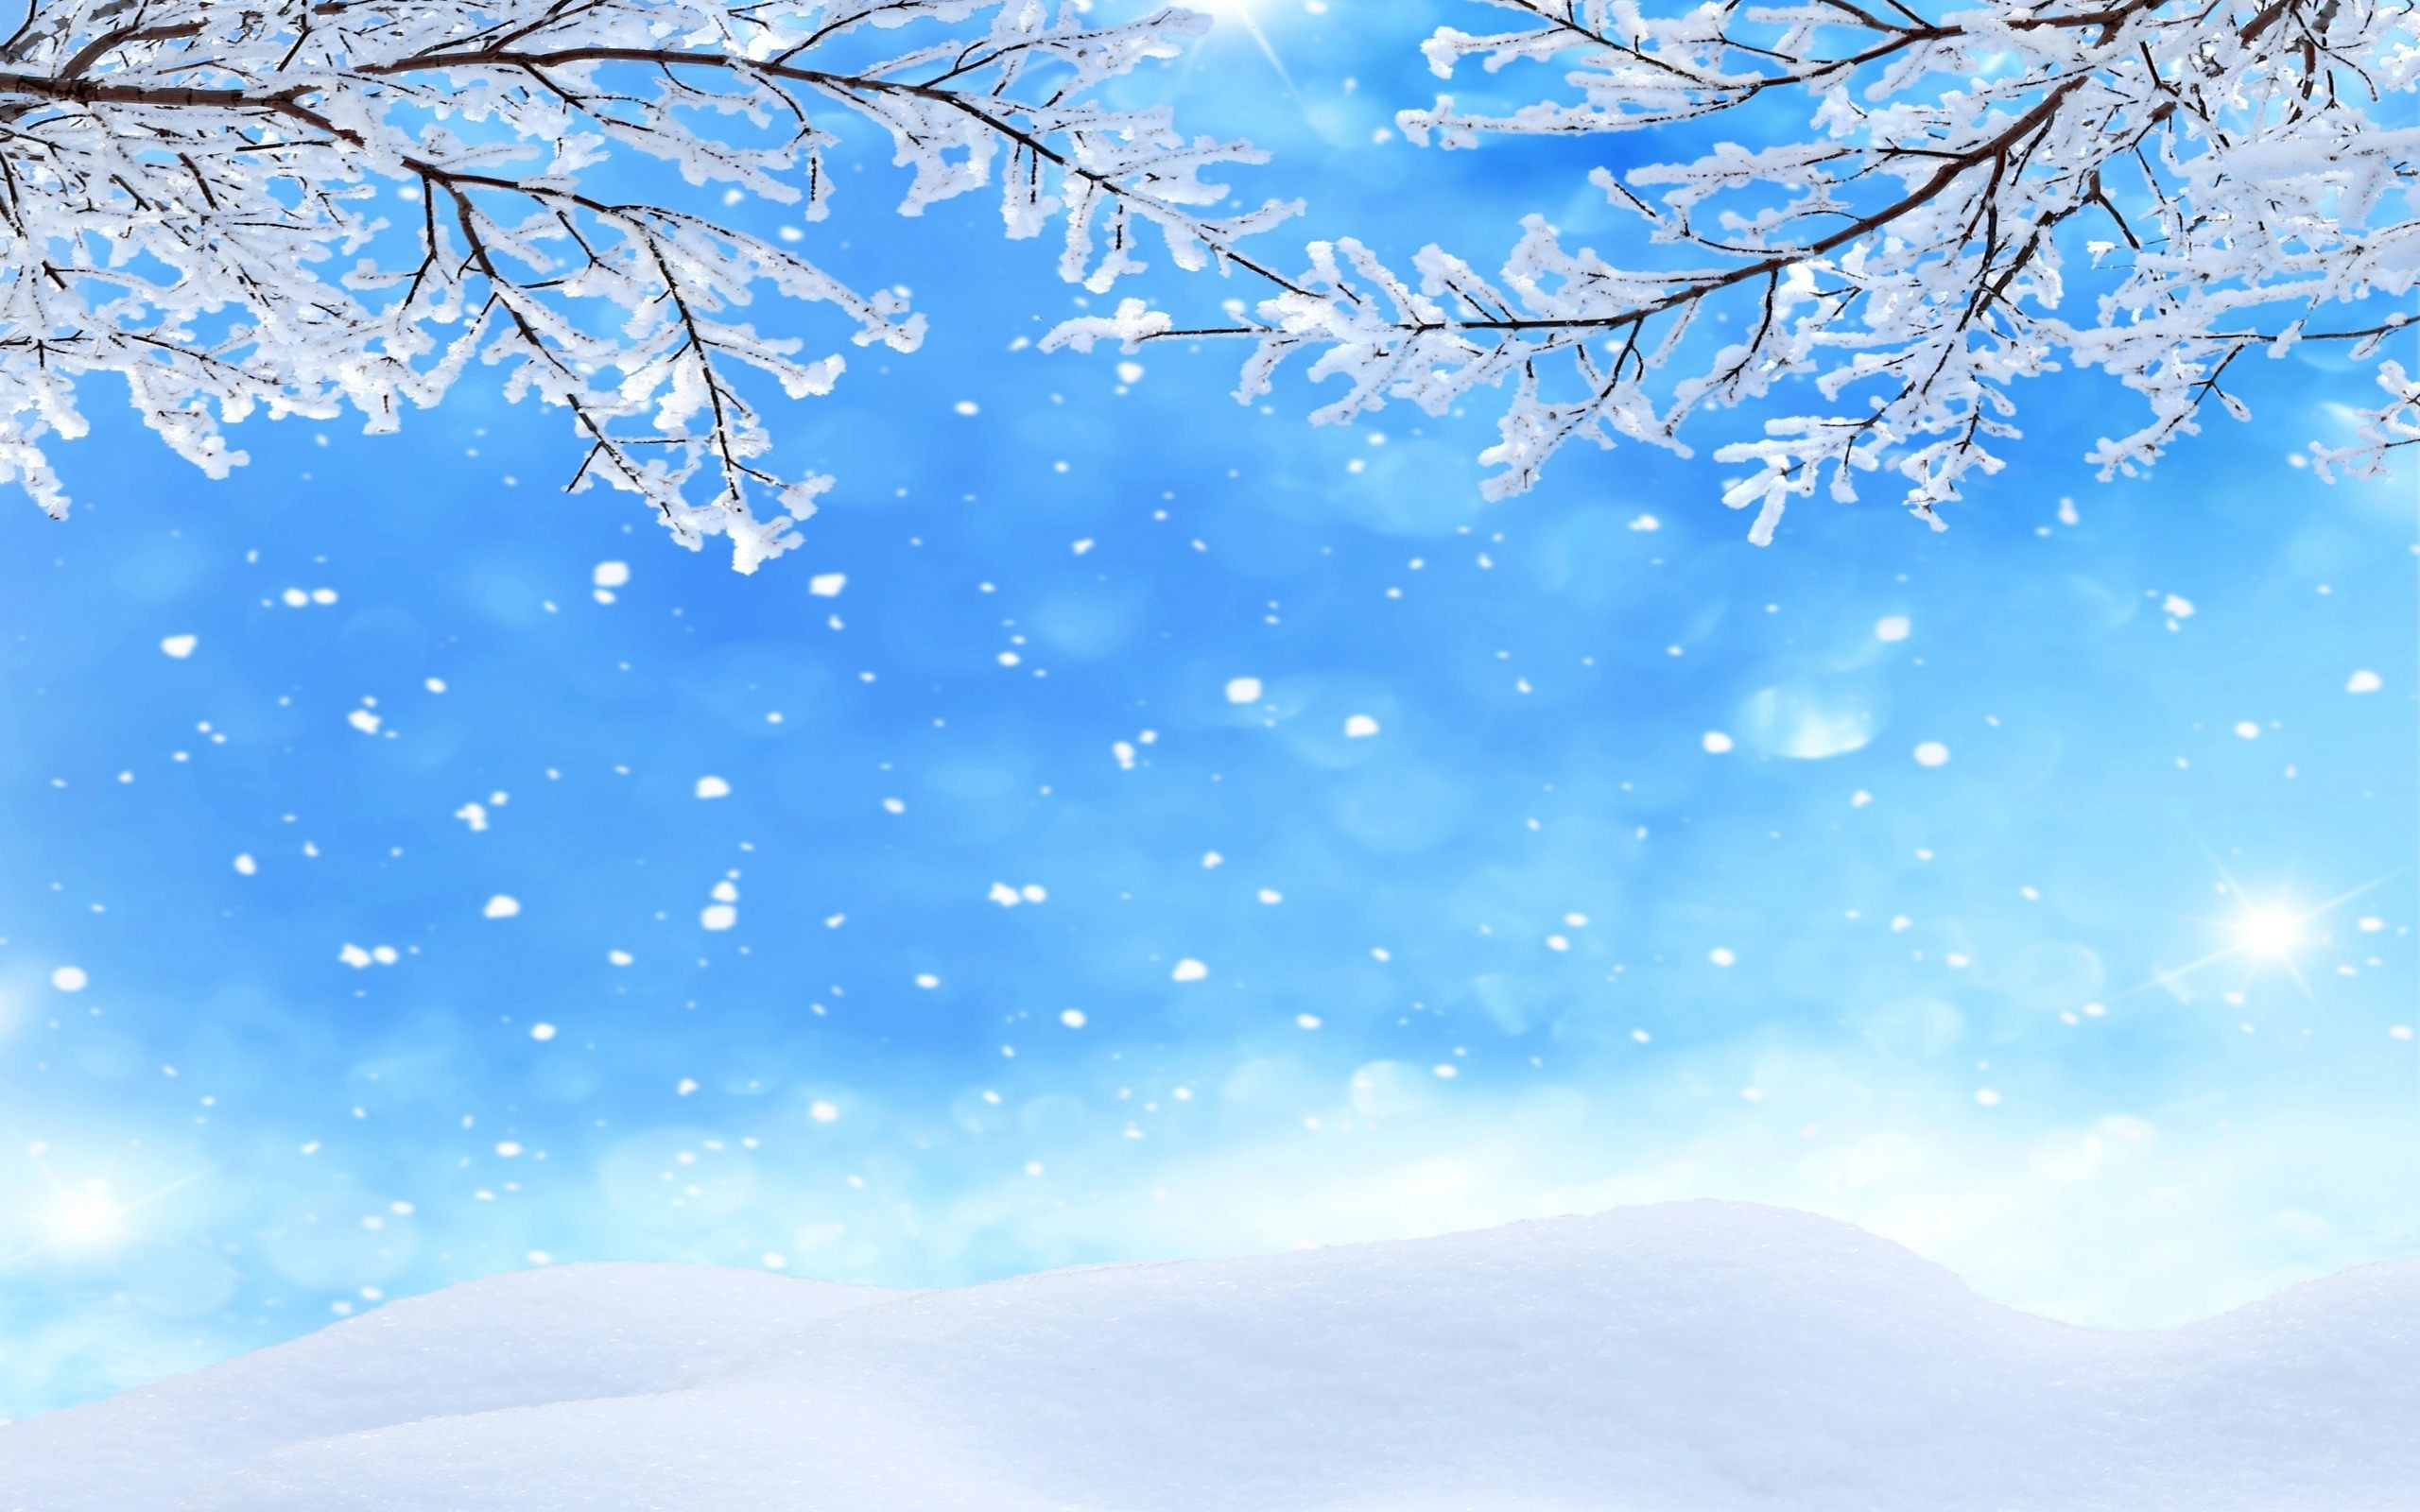 Beautiful Snow Falling Wallpapers Winter Background Pictures 183 ① Wallpapertag